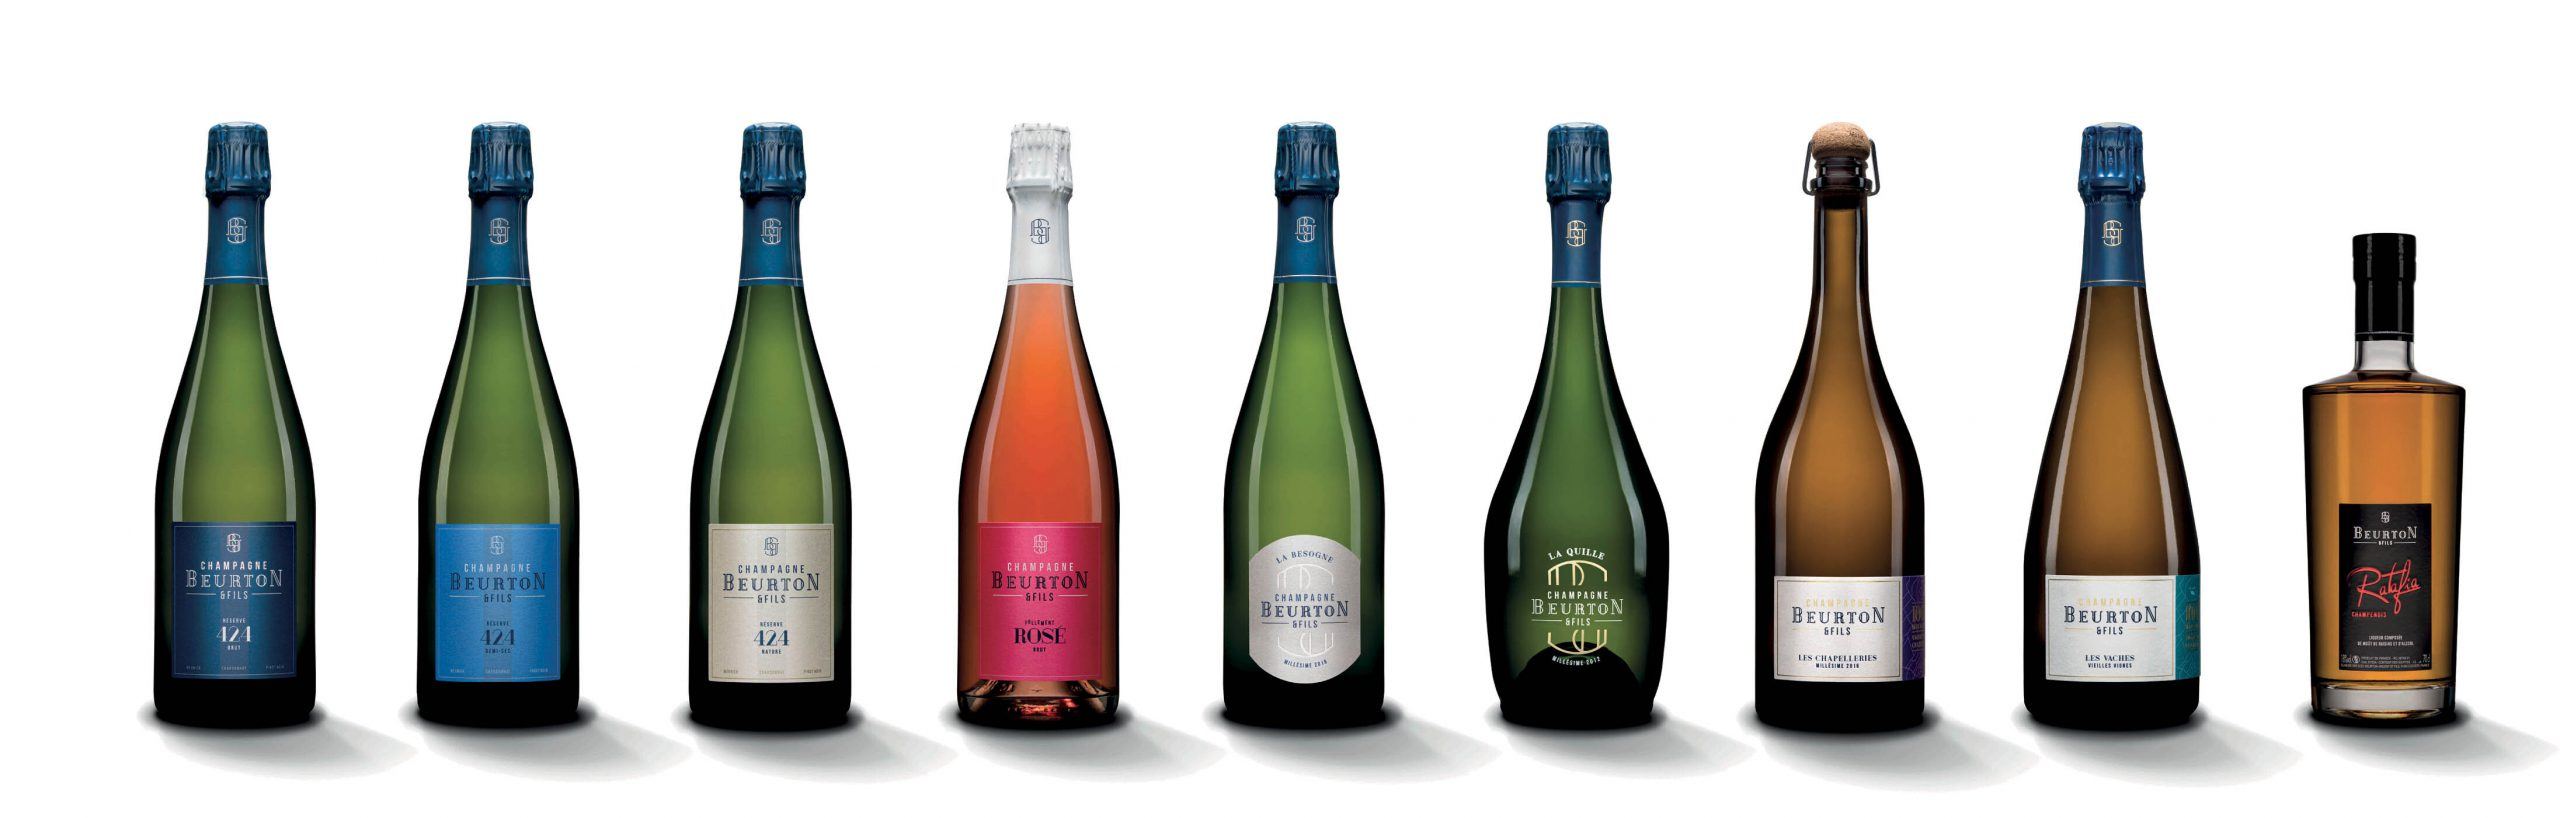 Gamme Champagne Beurton & Fils